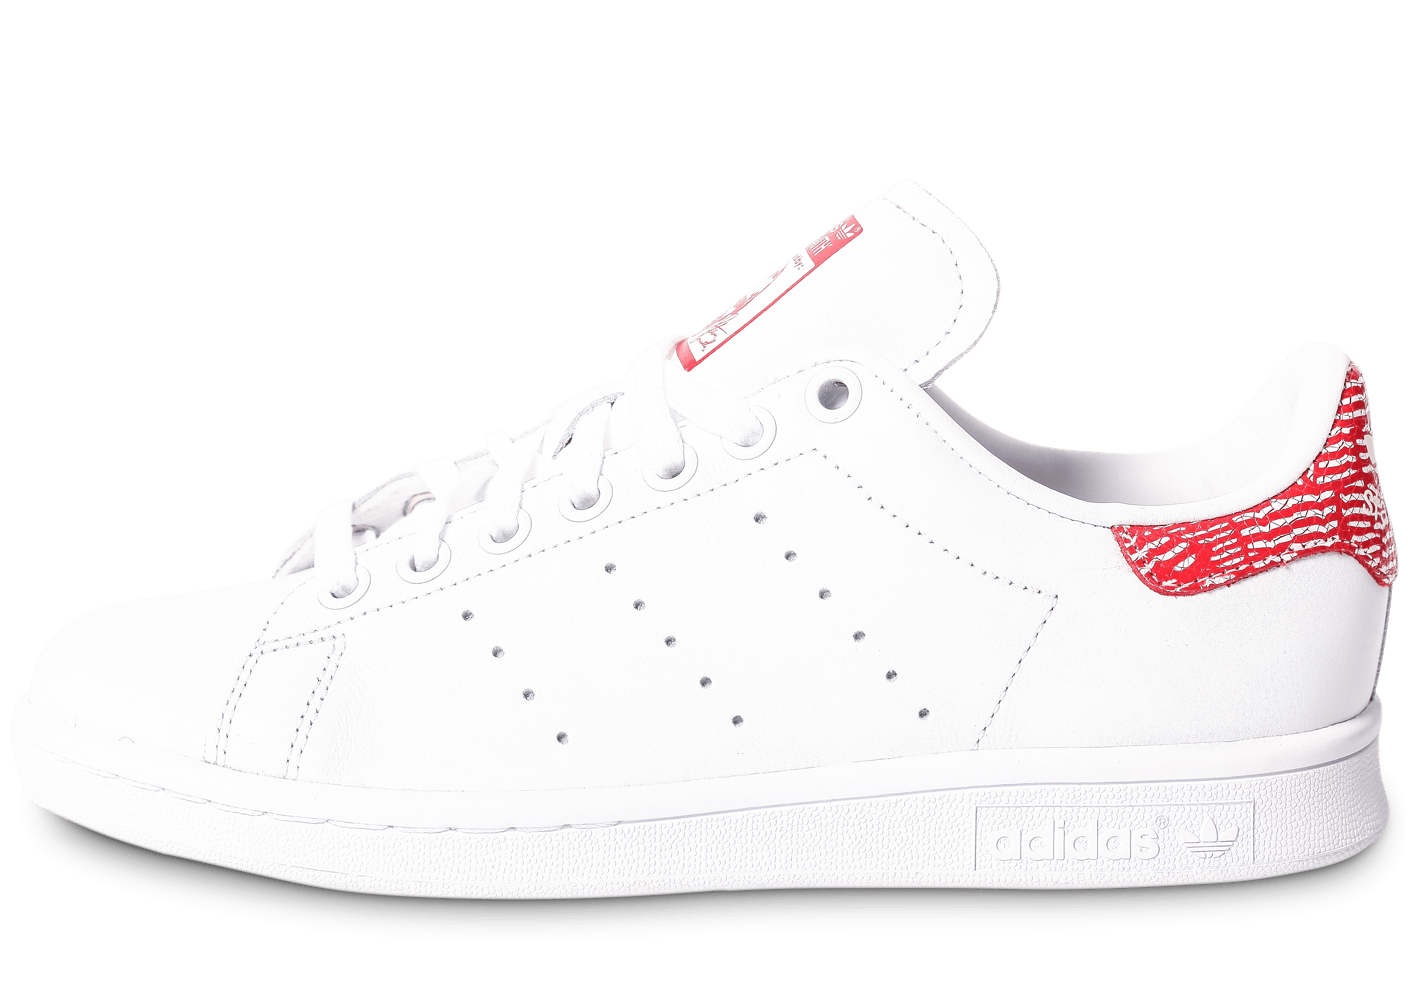 adidas stan smith collegiate rouge chaussures adidas chausport. Black Bedroom Furniture Sets. Home Design Ideas